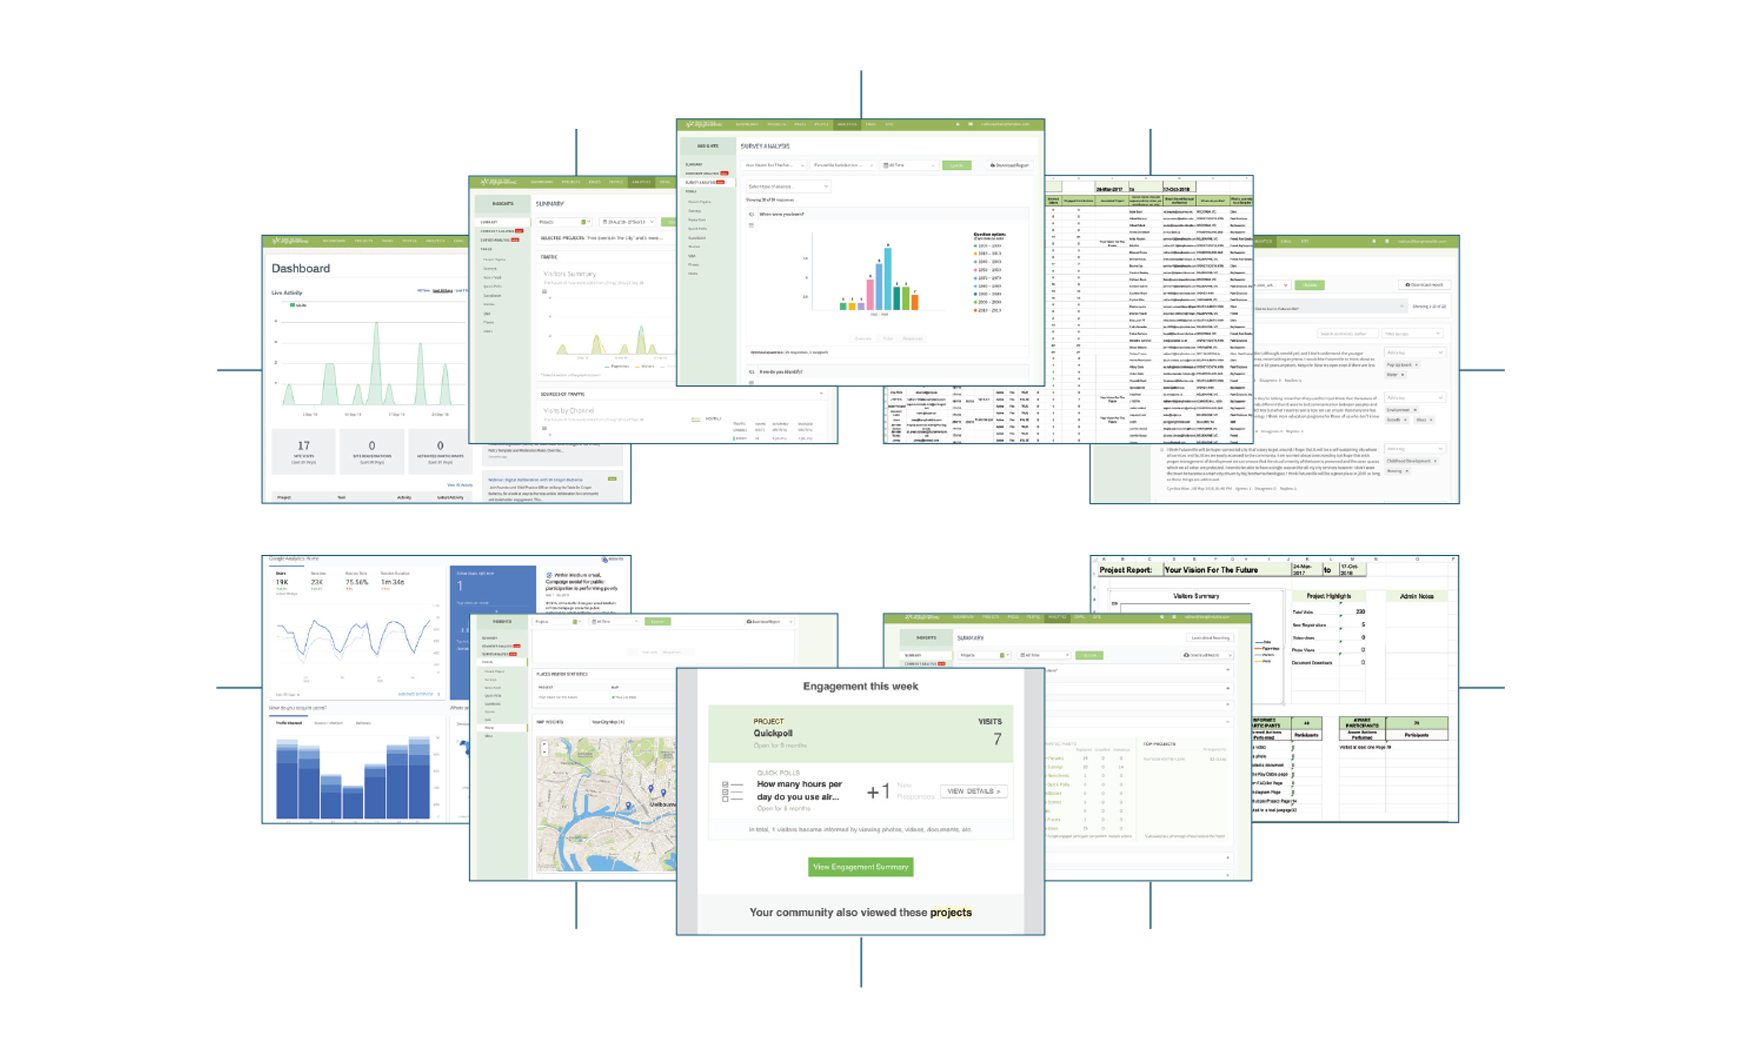 EngagementHQ On-Board Analytics offers dedicated reporting and analytics tools across dashboard insights, Google Analytics integration, charts, benchmarking, email reports, demographics, comment analysis and more